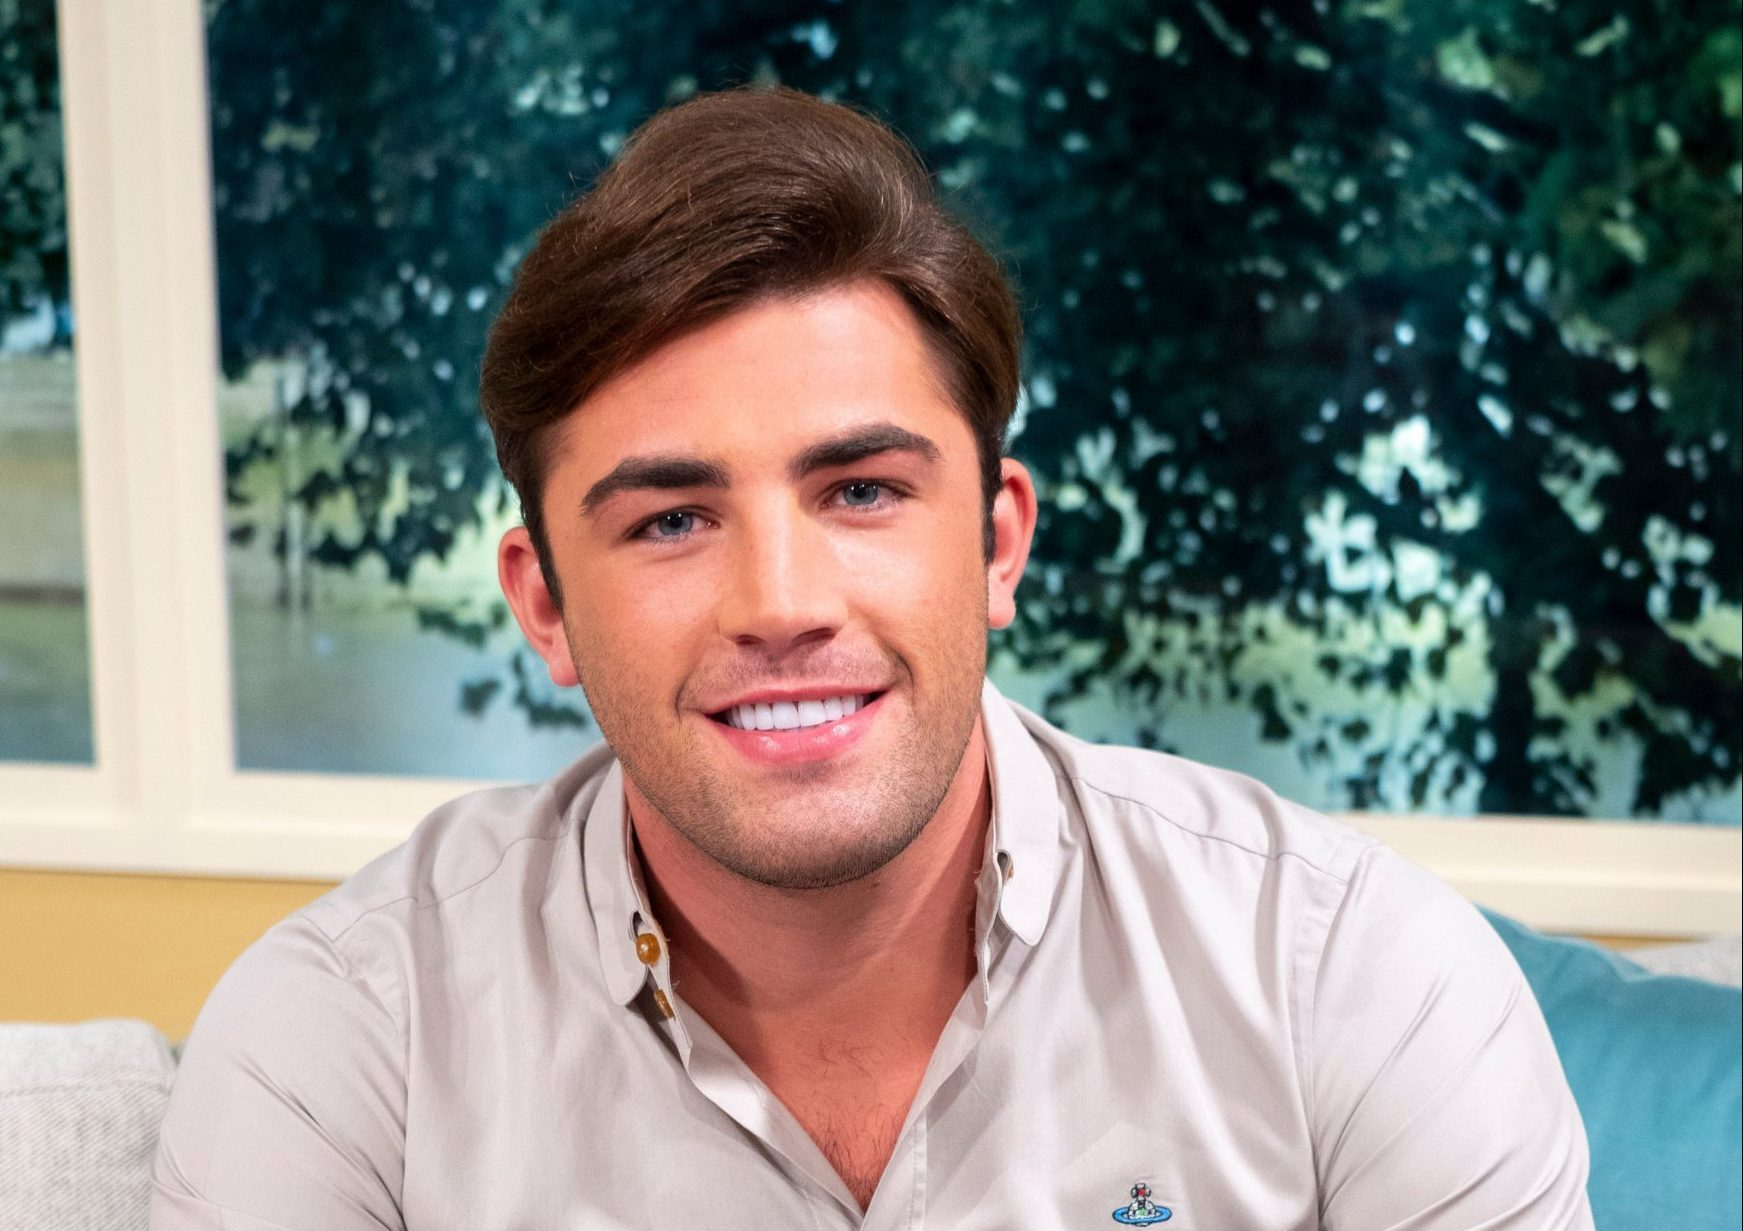 EDITORIAL USE ONLY. NO MERCHANDISING Mandatory Credit: Photo by Ken McKay/ITV/REX/Shutterstock (9848271w) Jack Fincham 'This Morning' TV show, London, UK - 03 Sep 2018 From day dot the nation became obsessed with Love Island winners Dani and Jack but after spending eight weeks following the ins and outs of their relationship all we want to know is WHAT ARE THEY DOING NOW?! At last, they join us for their first exclusive joint TV interview together and will be revealing how living together is going and will be addressing the rumours that they are apparently getting married next year.